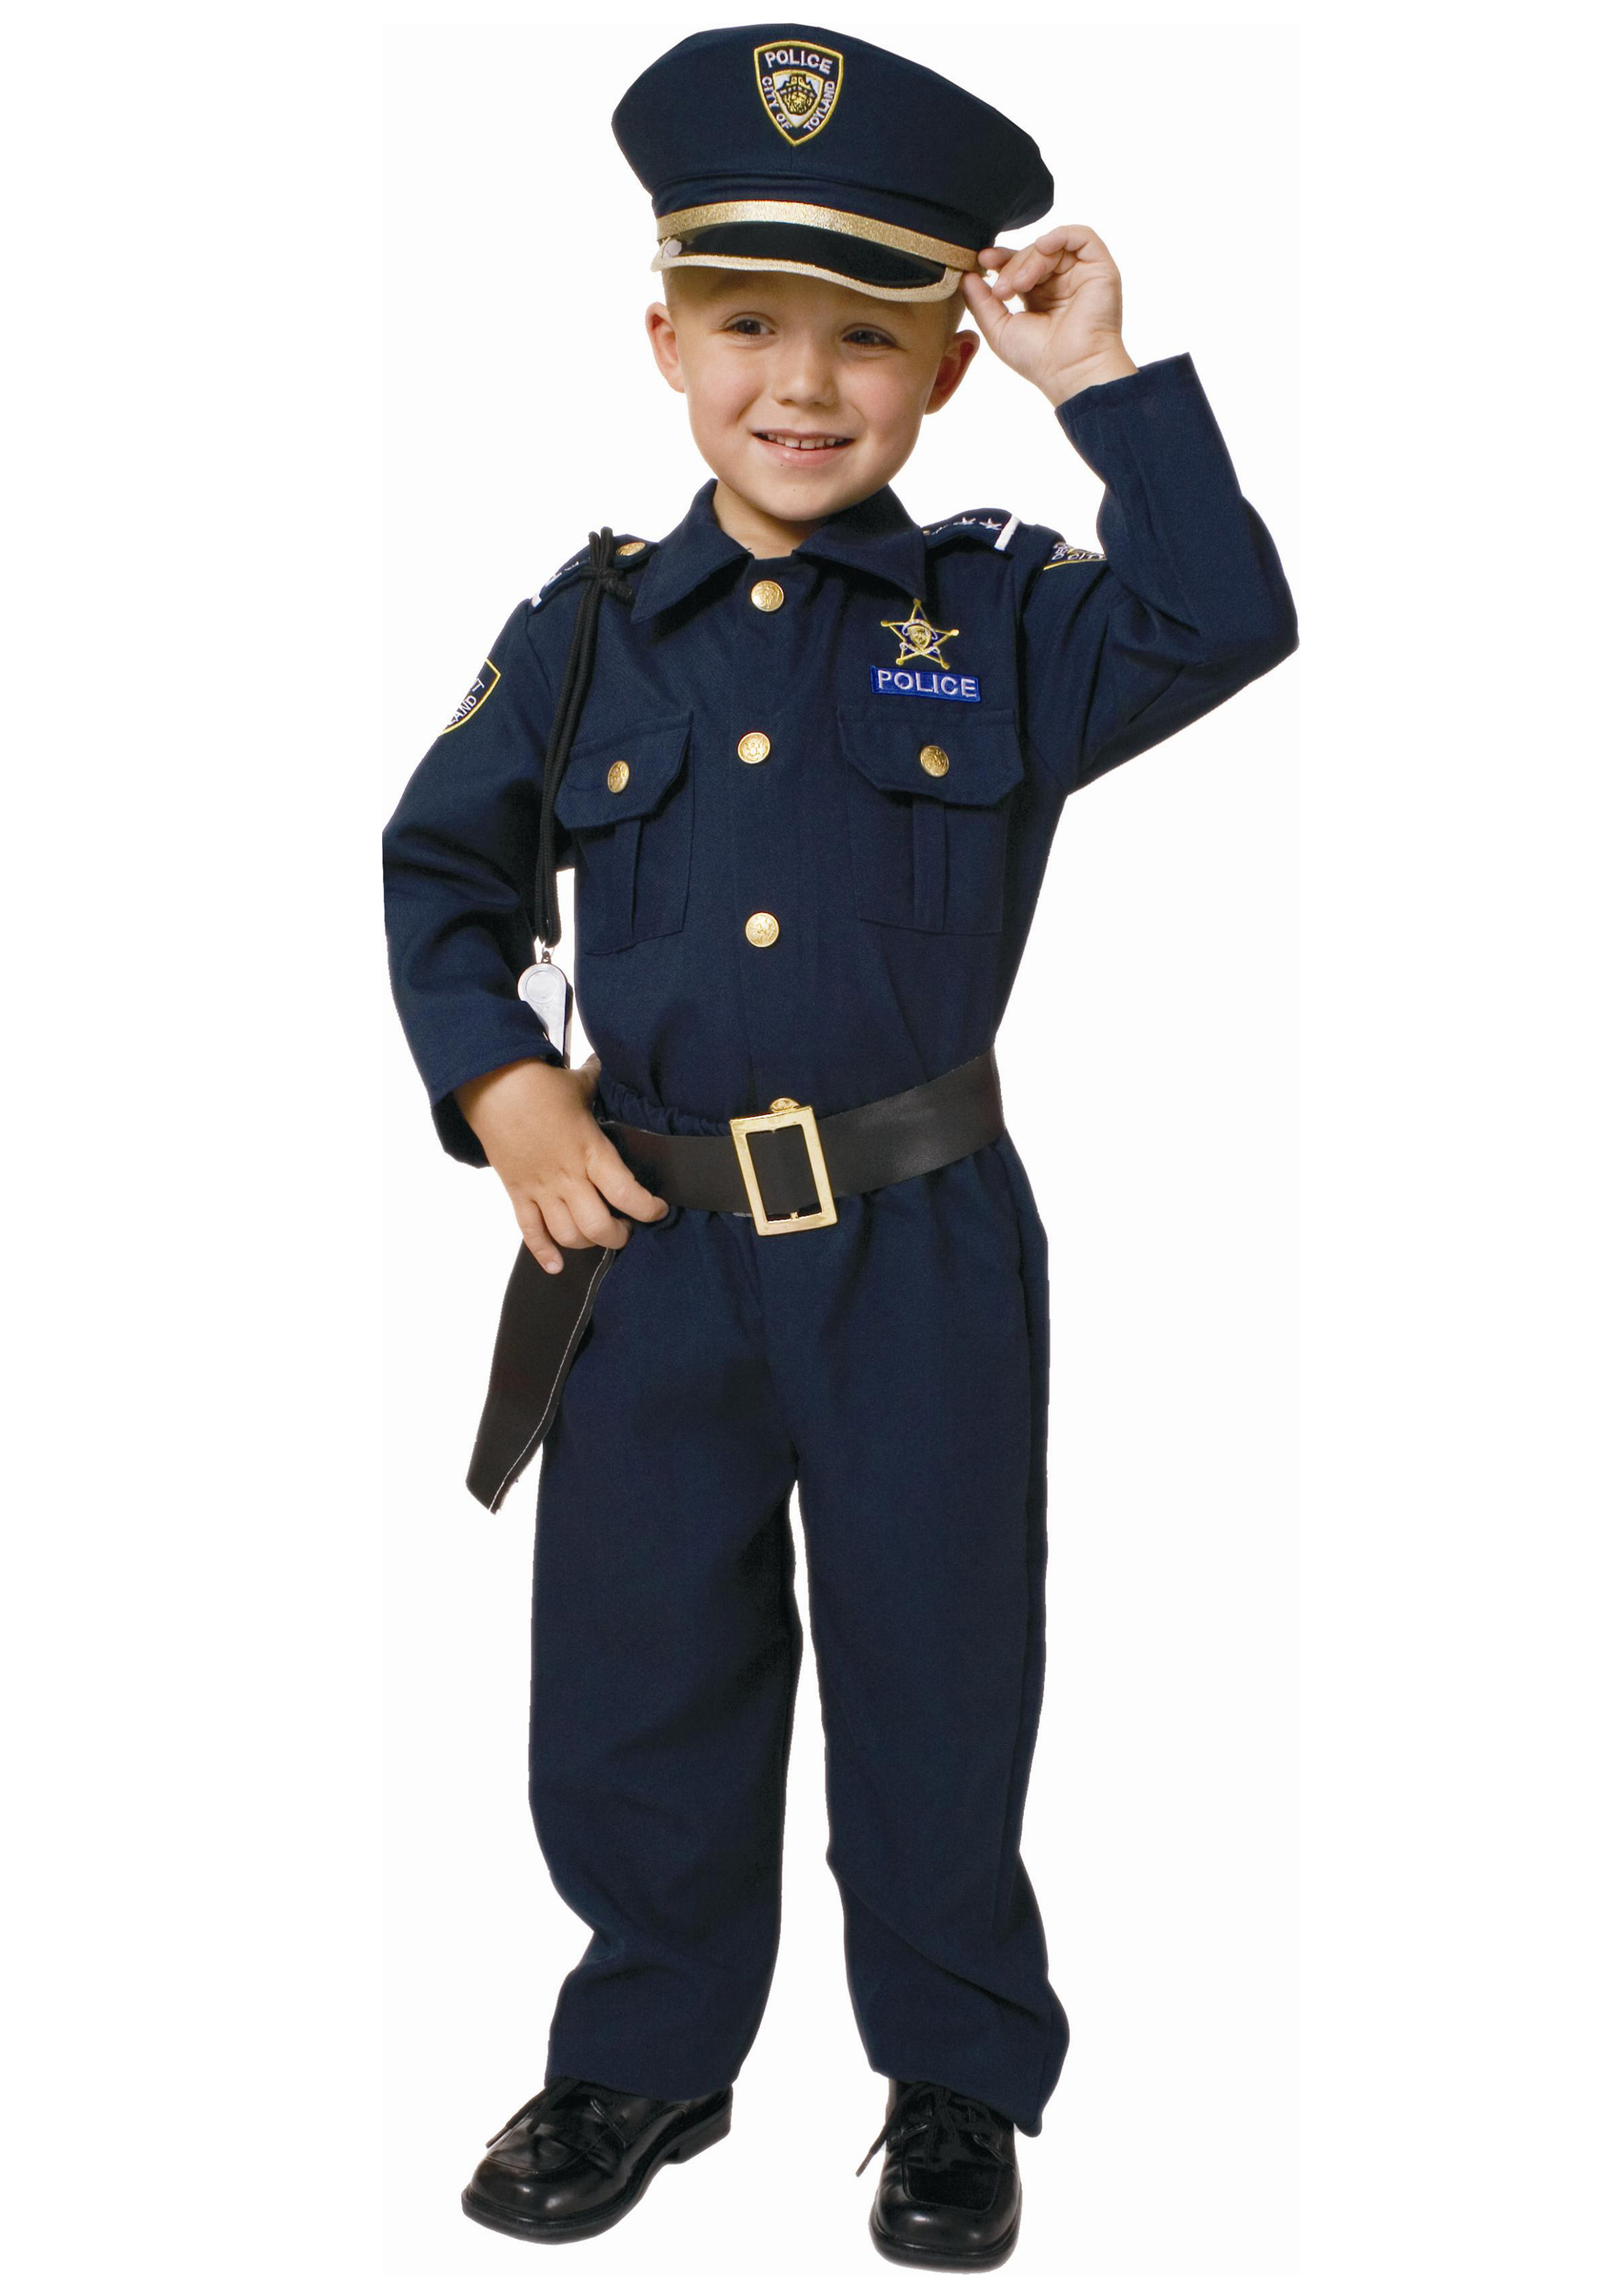 Yes, son, boys can be police officers, too.